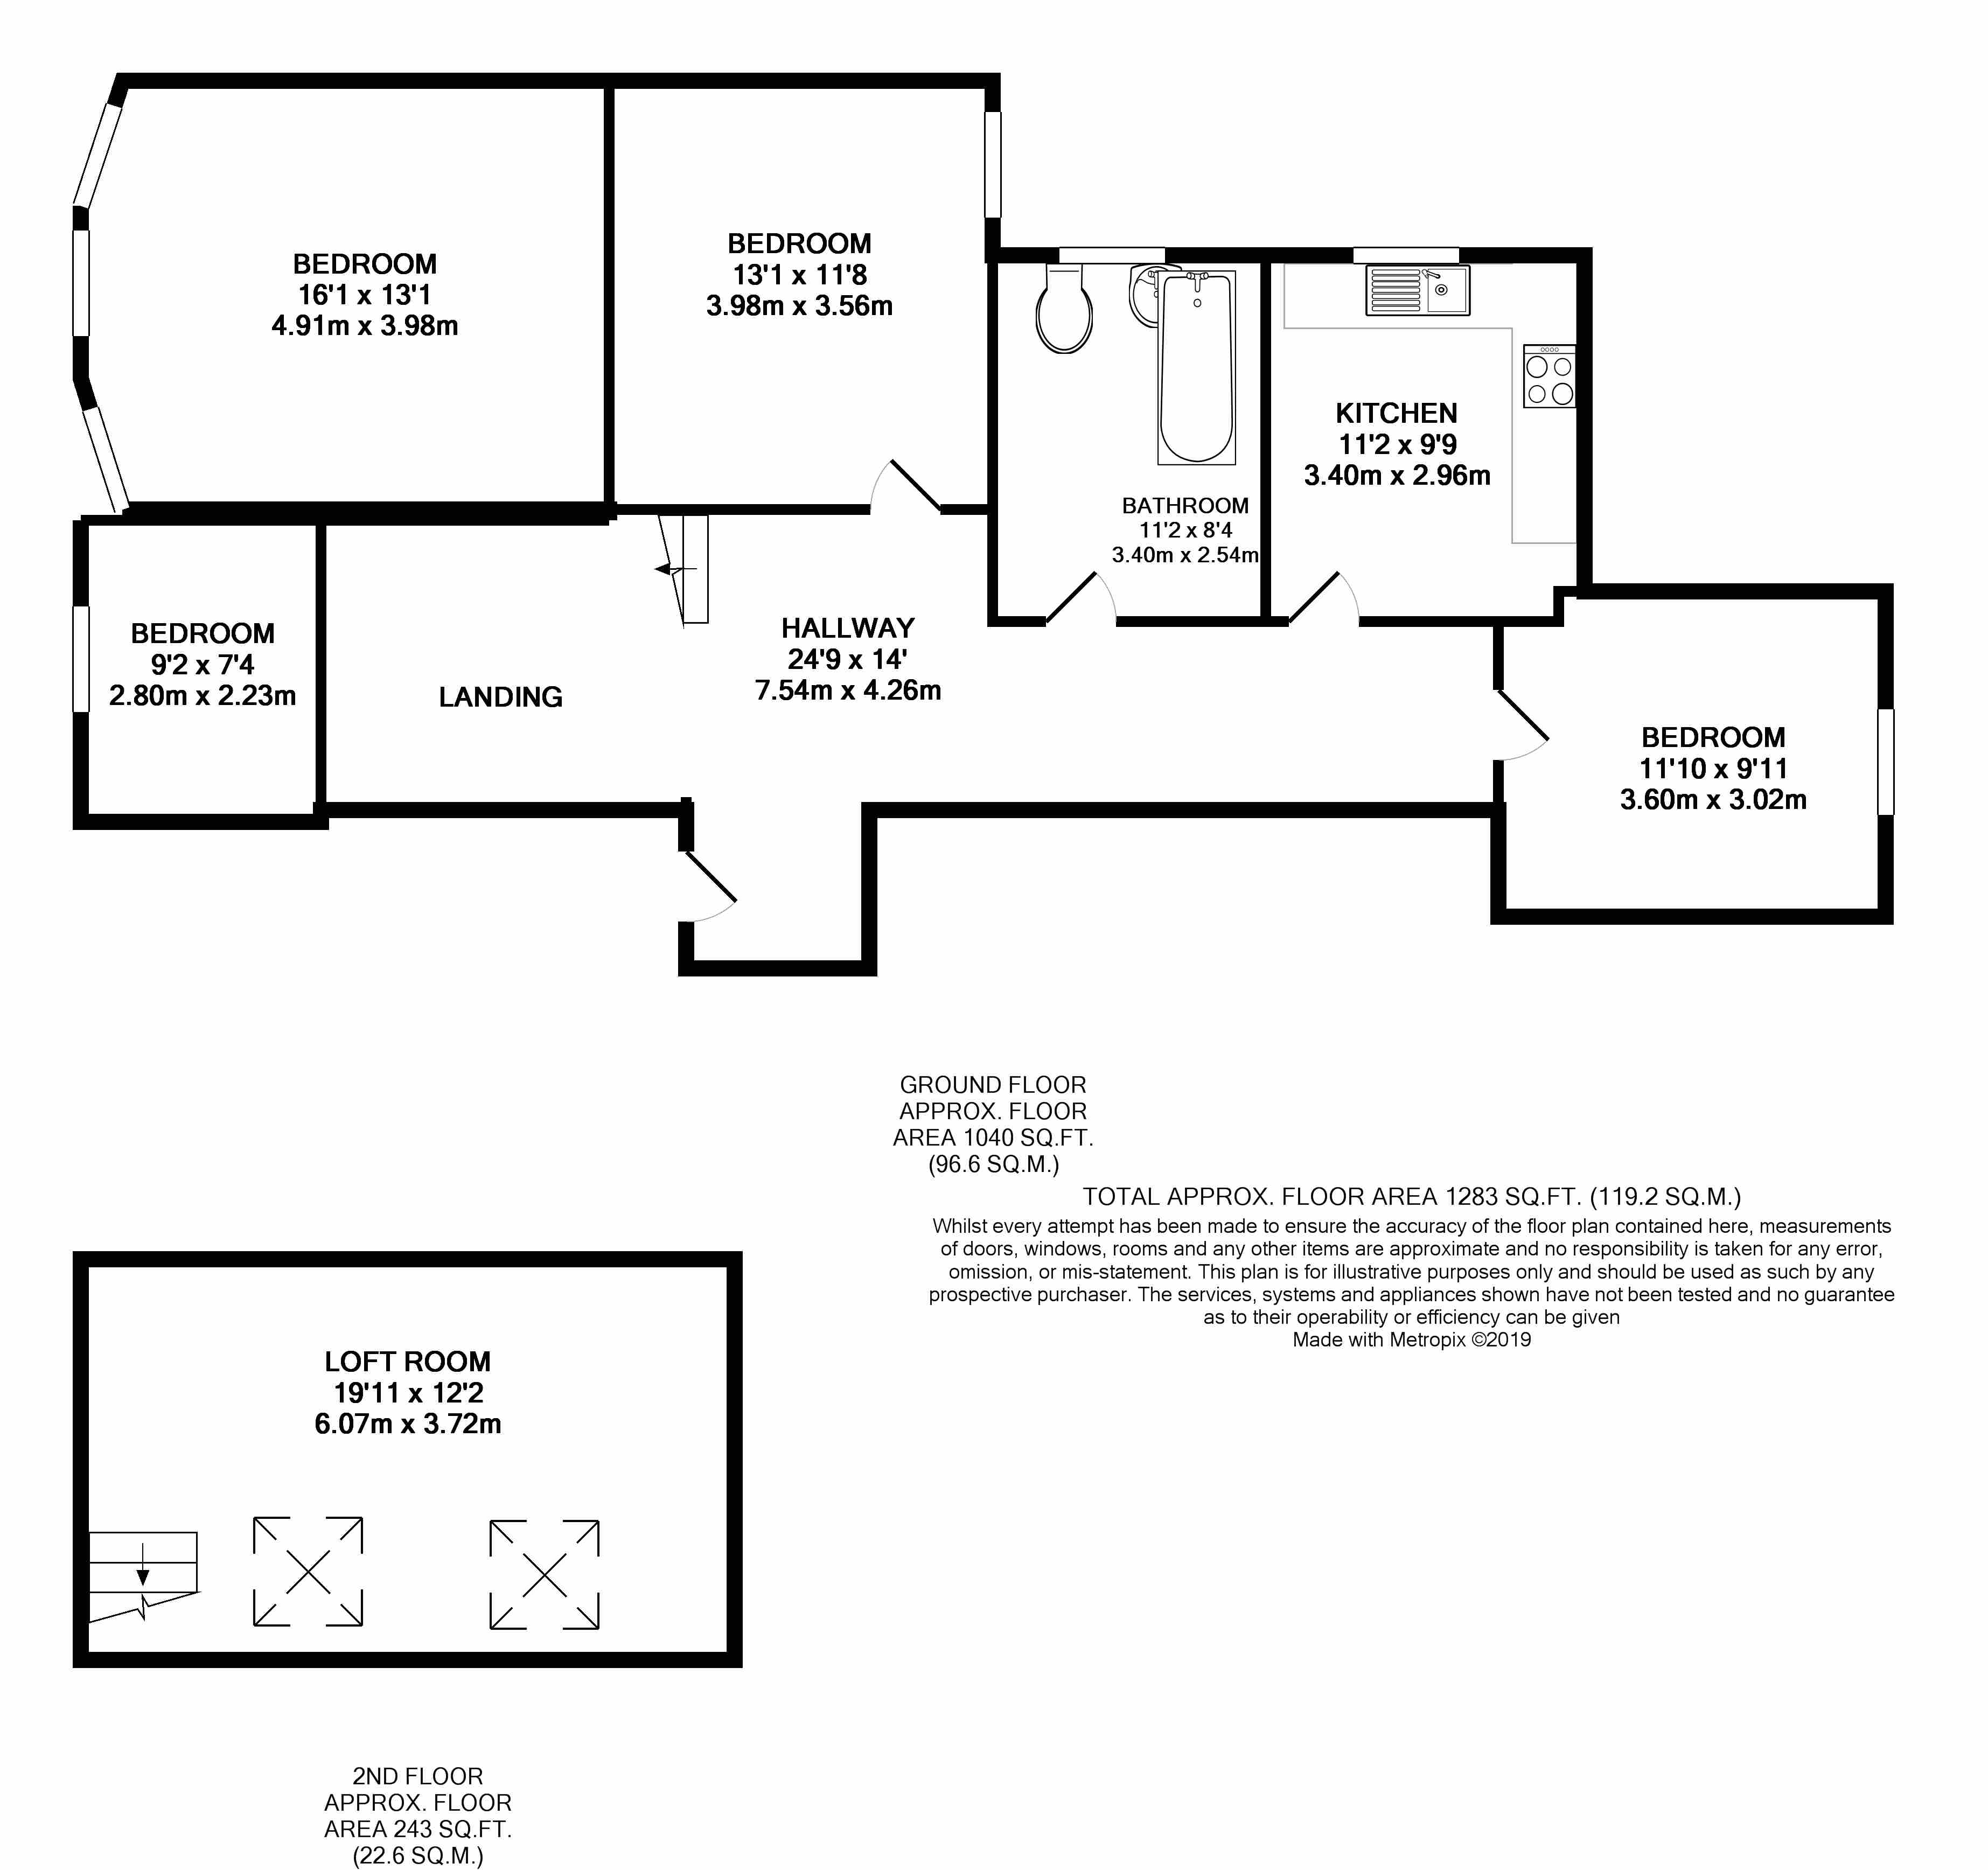 Floorplans For Tunley Road, Willesden, London,NW10 9JS